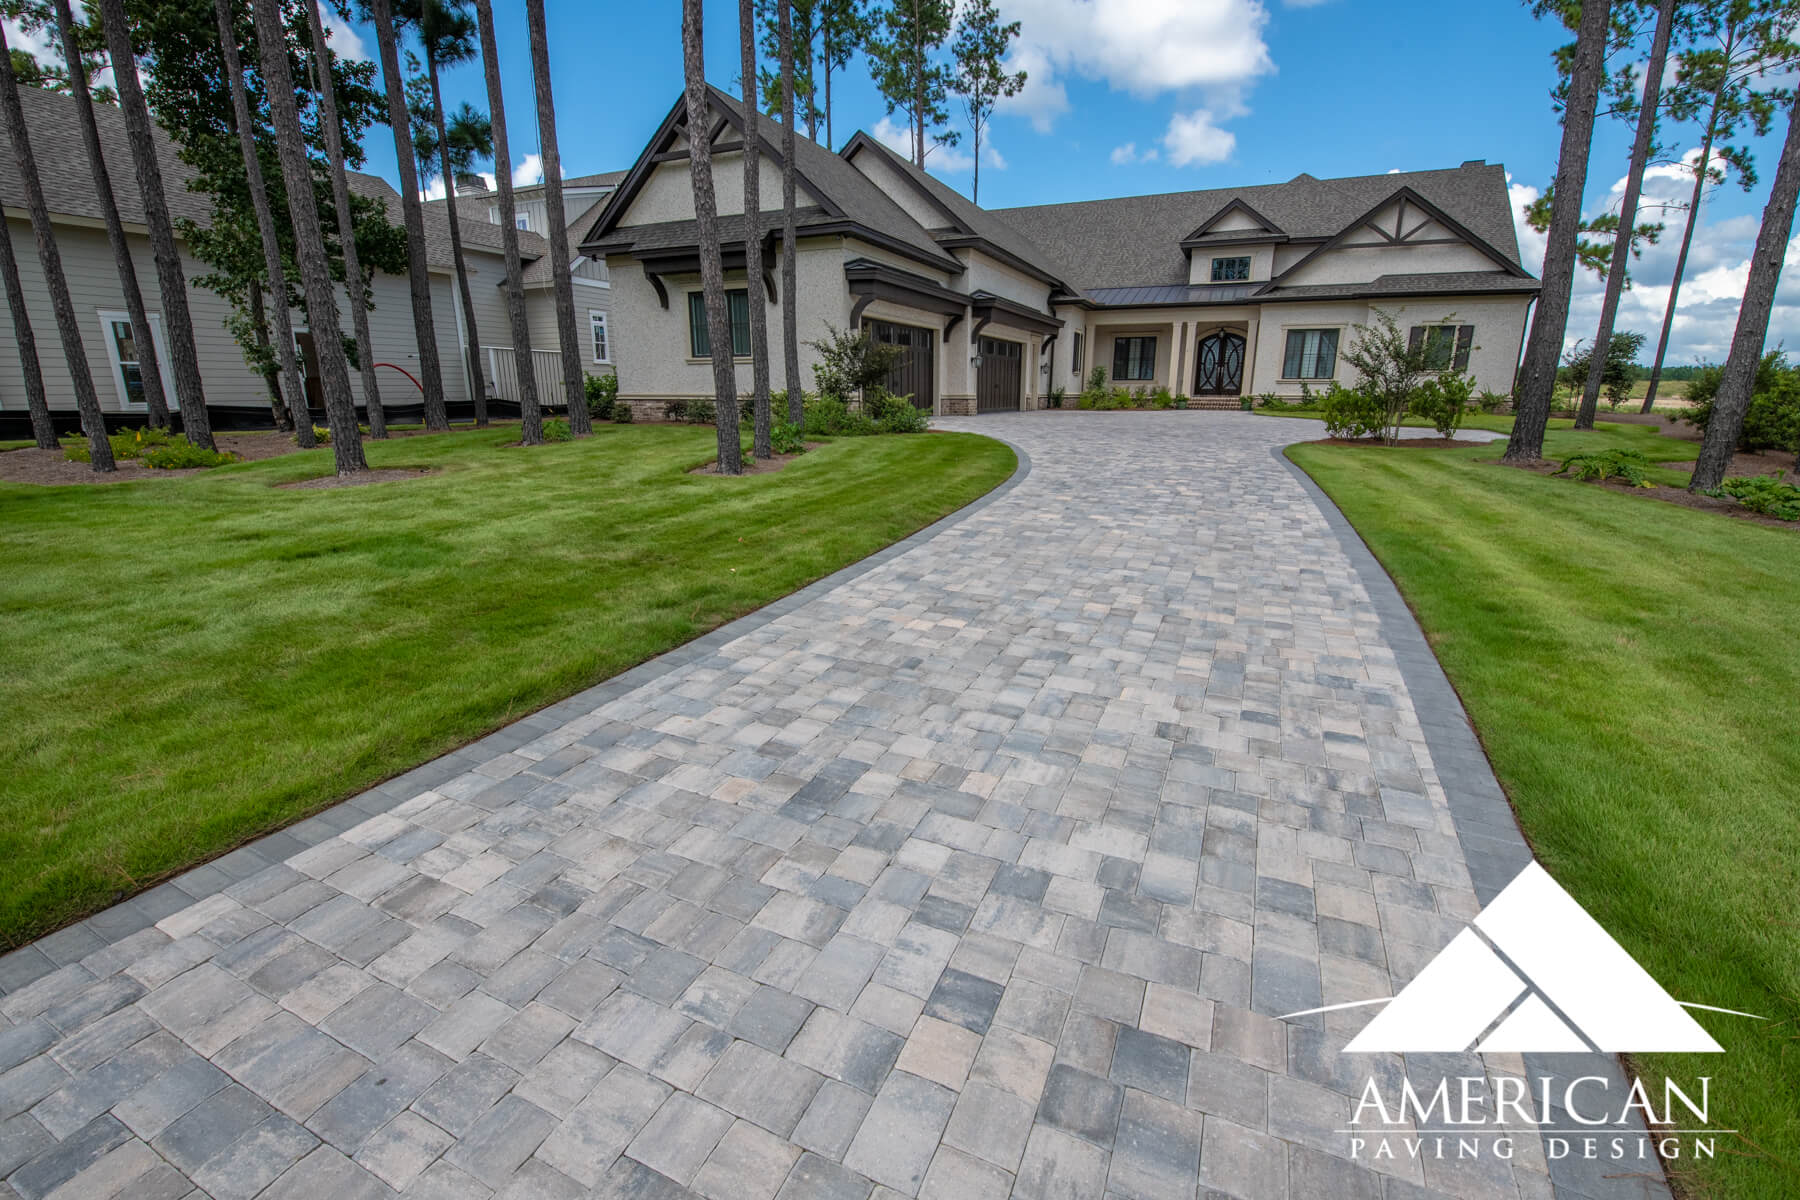 All About Brick Paver Driveway Installation & Design